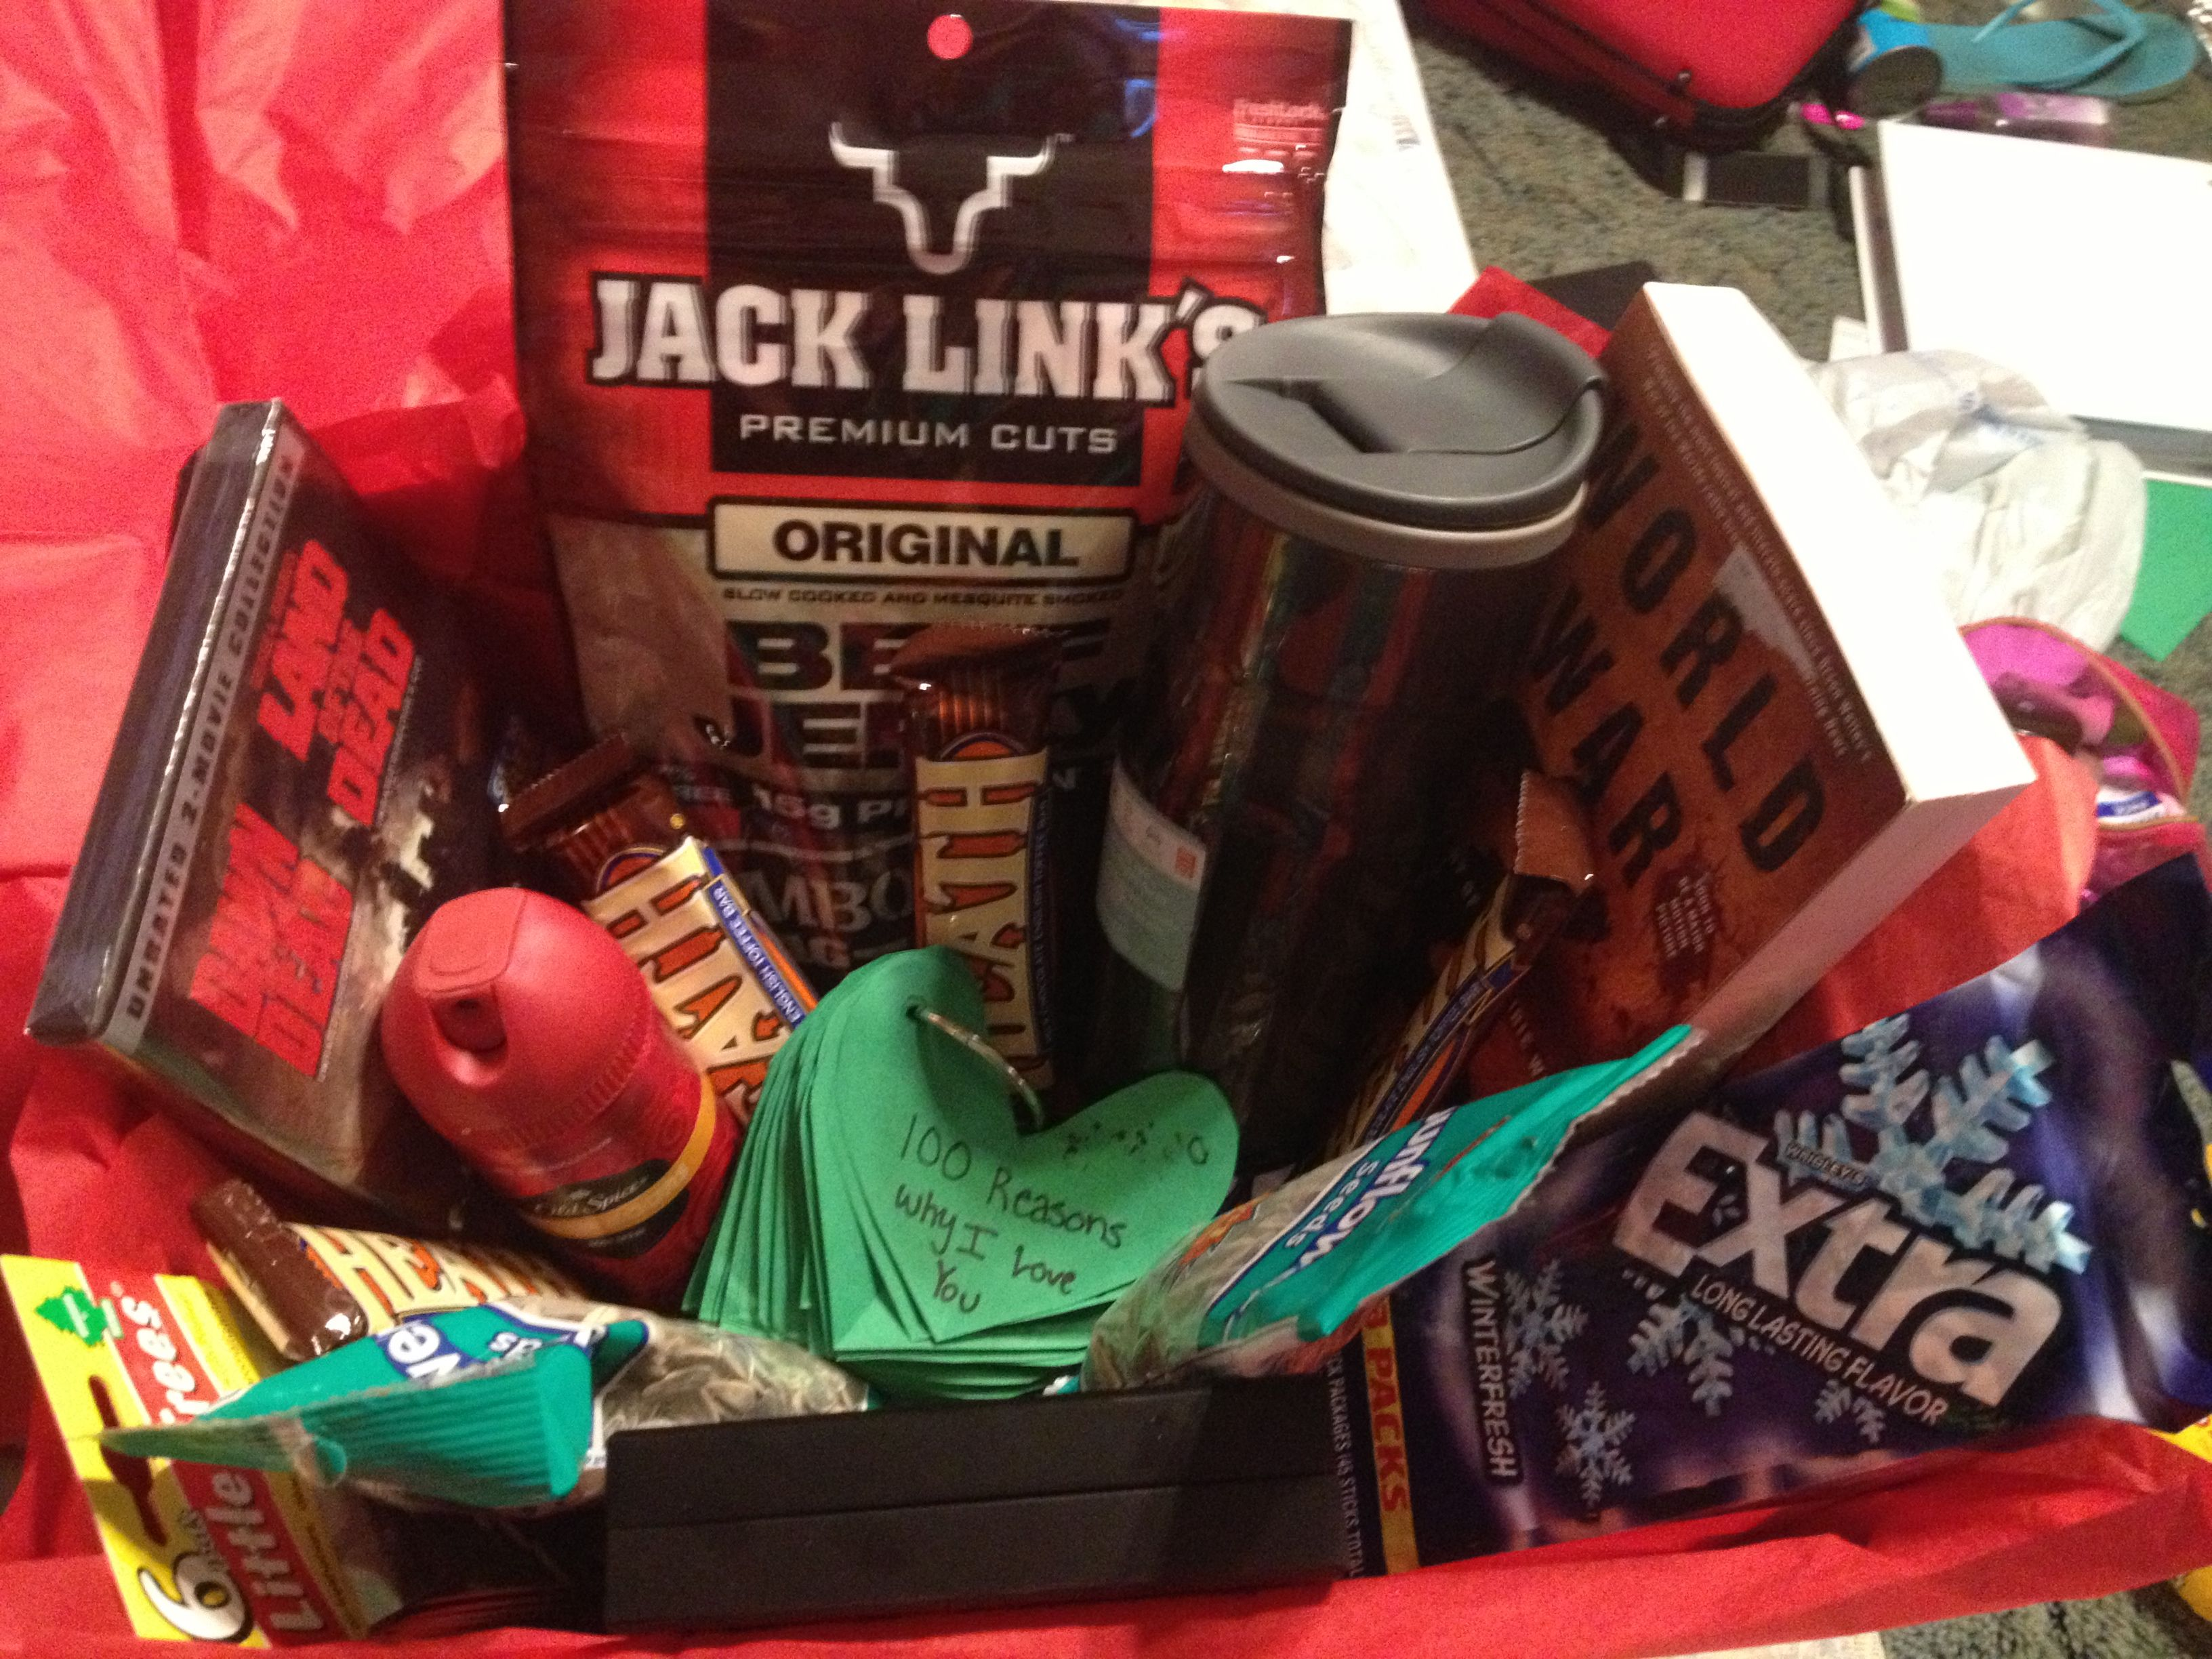 Anniversary food gift ideas ~ The man basket i made for my boyfriend for our year anniversary